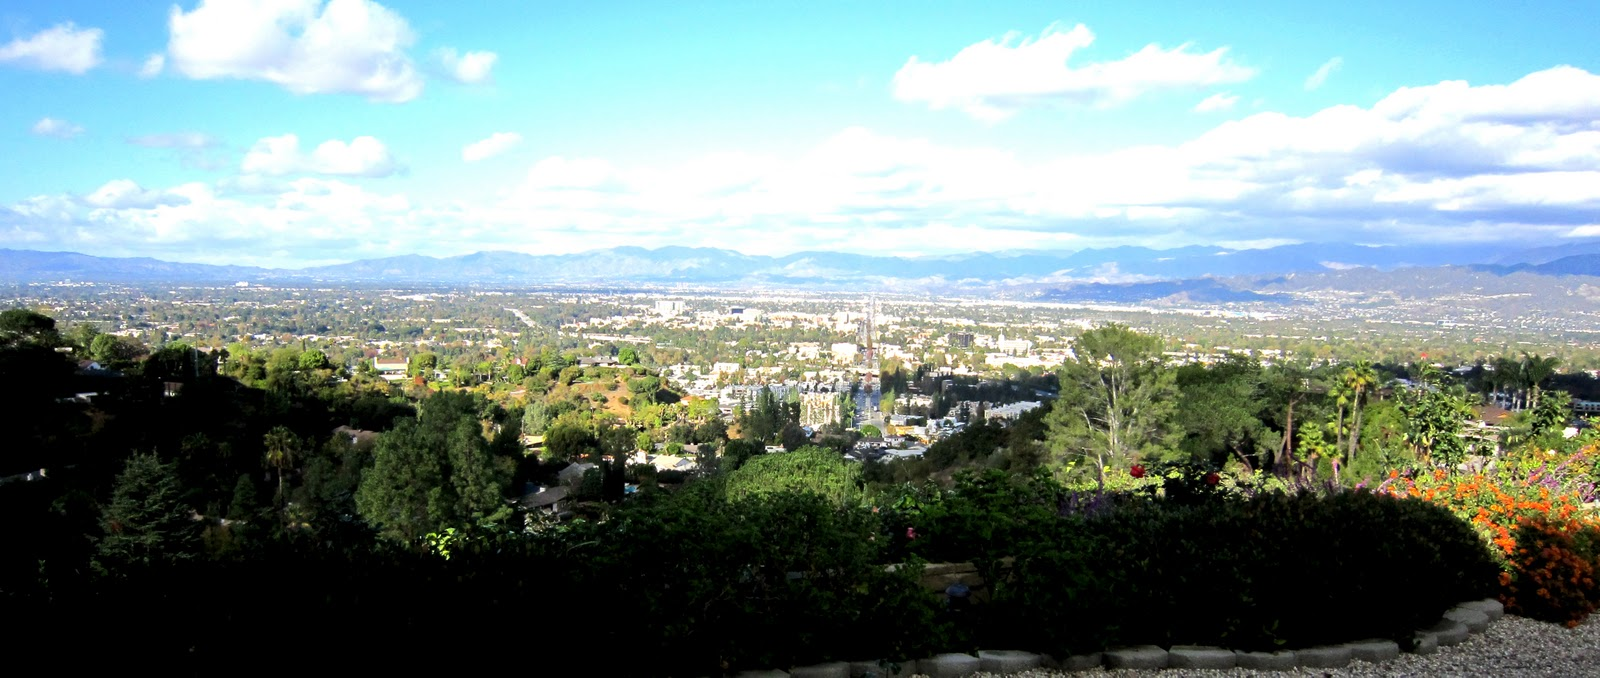 The Museum of the San Fernando Valley: VIEWS OF THE VALLEY